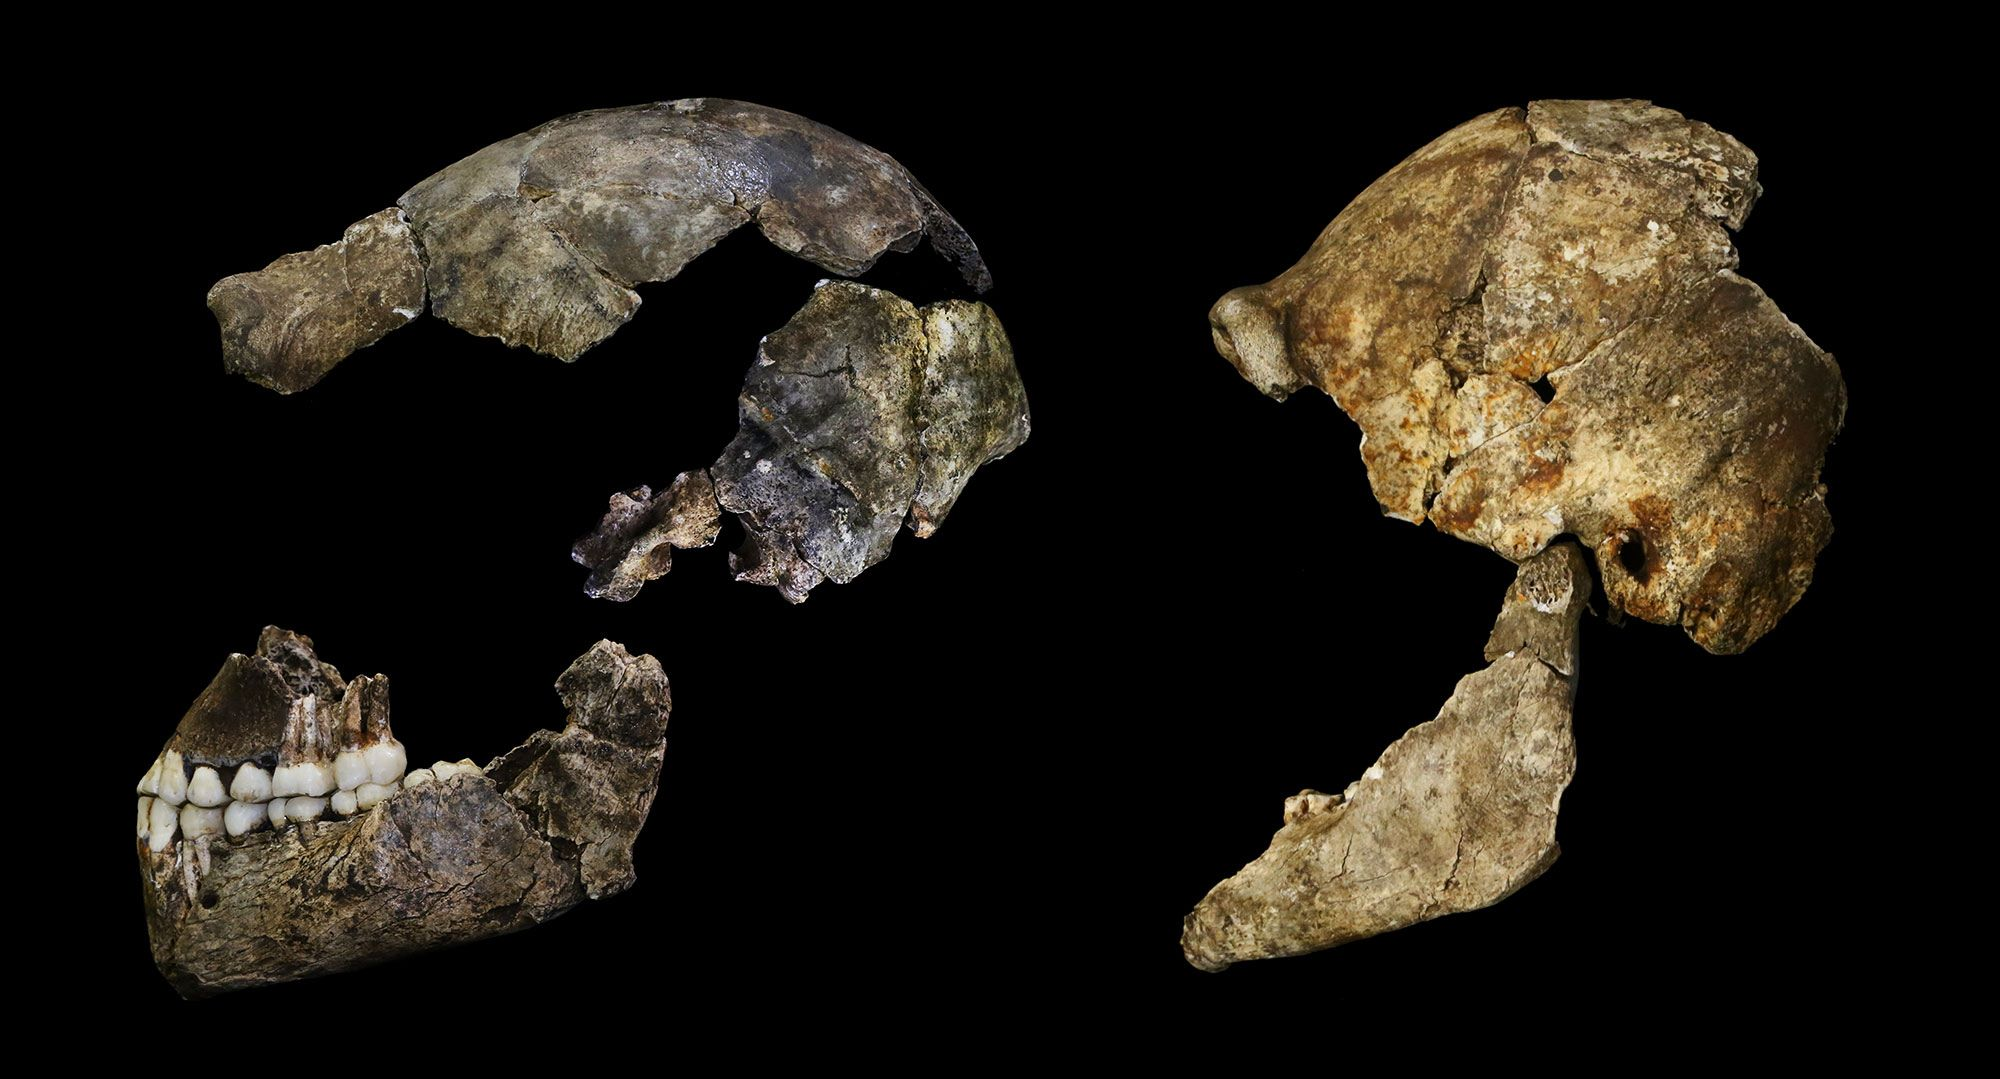 a review of the article early homo erectus tools in china In the january/february issue of archaeology magazine, the article early homo erectus tools in china holds additional, yet questionable information about the foundations of the genus homo after recent findings of stone tools and animal bones at renzidong (renzi cave) in anhui province, eastern .